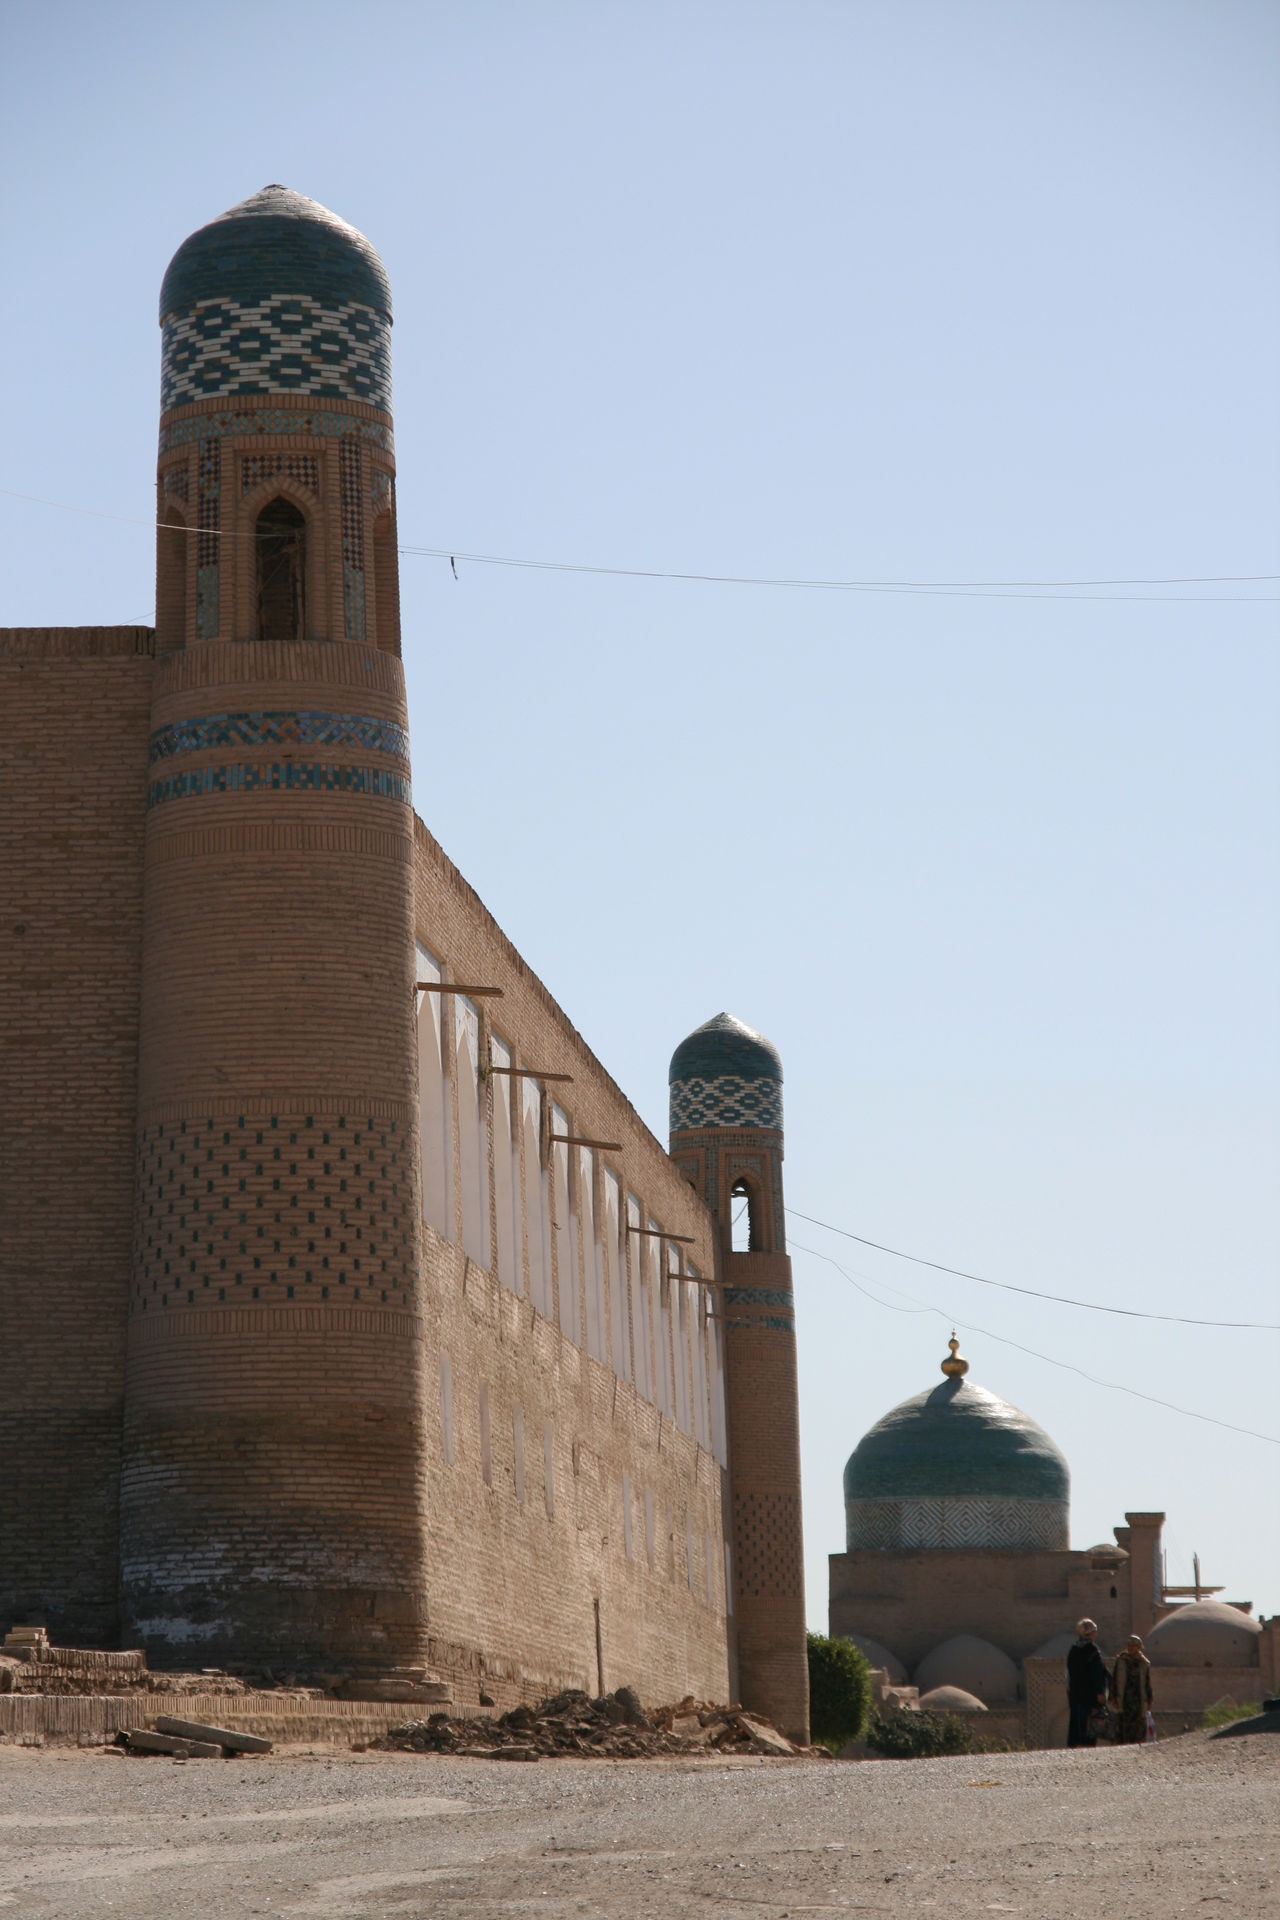 Architecture Architecture Blue Building Exterior Clear Sky Culture Dome Famous Place Historic History International Landmark Islam Islamic Architecture Khiva Mosque Place Of Worship Religion Silk Road Spirituality Tower Two People Uzbekistan Women